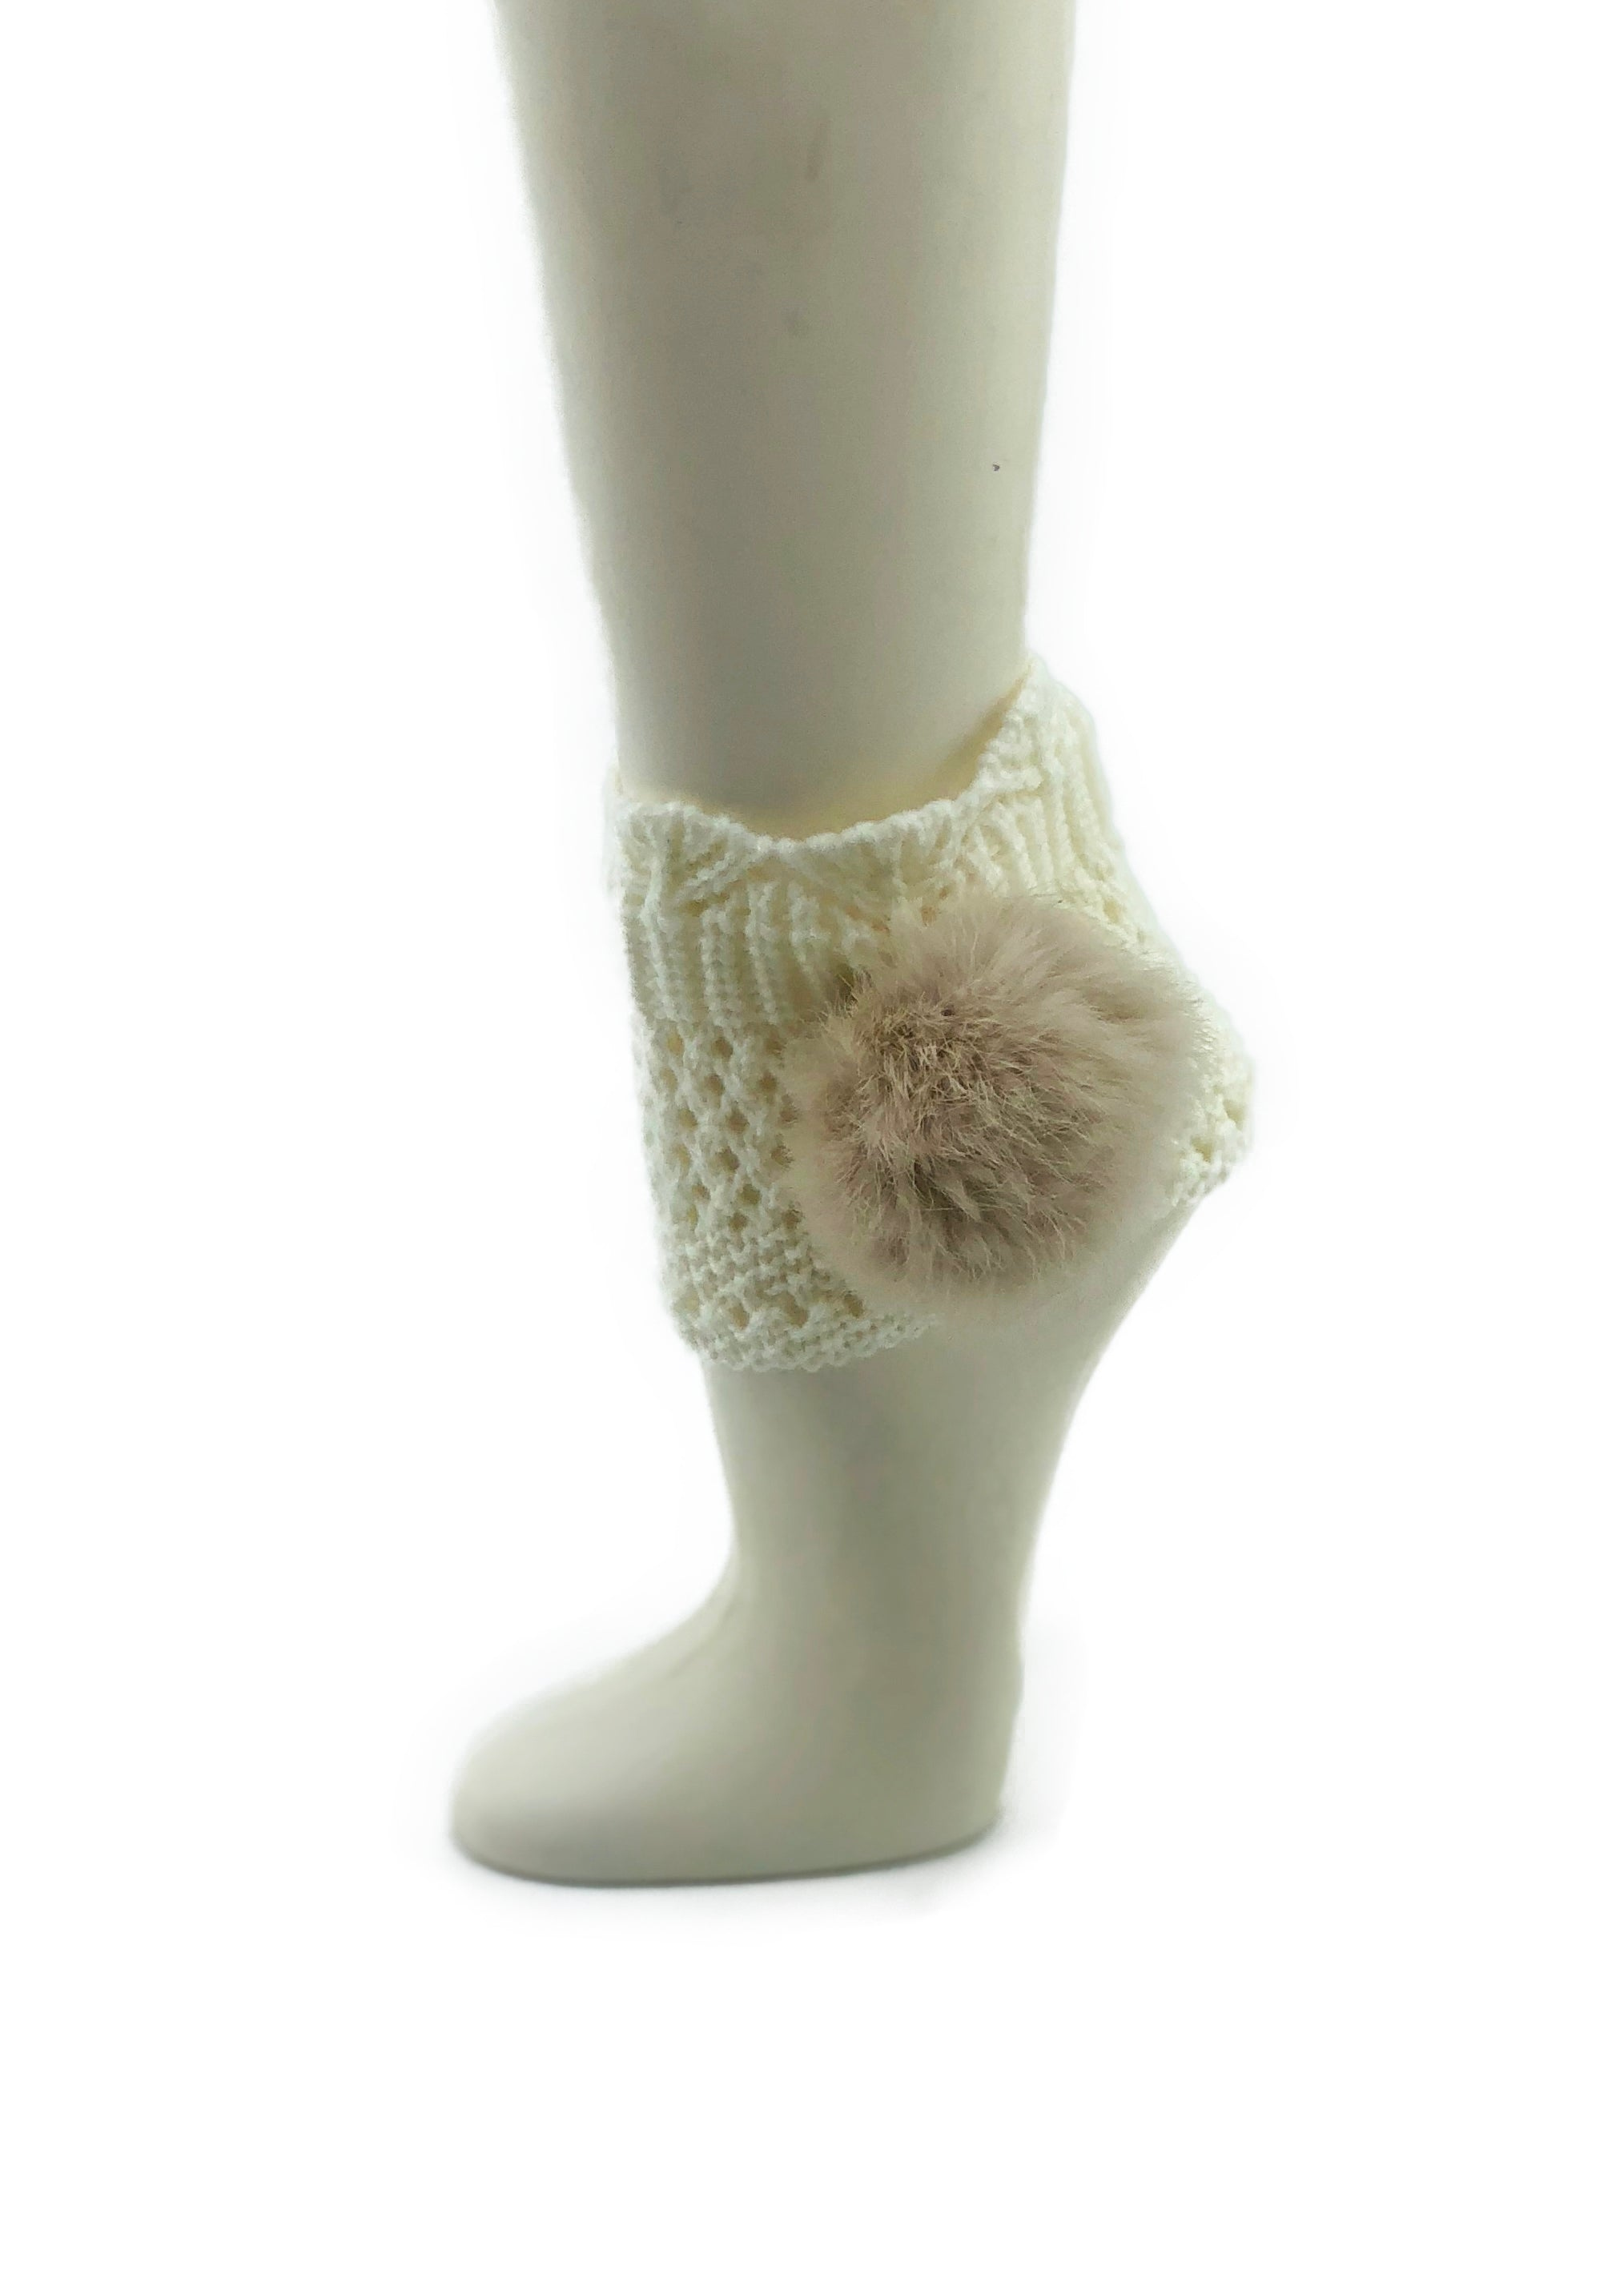 Off-White Leg Warmer/Boot Cover with Rex Rabbit Pom - paulamarie